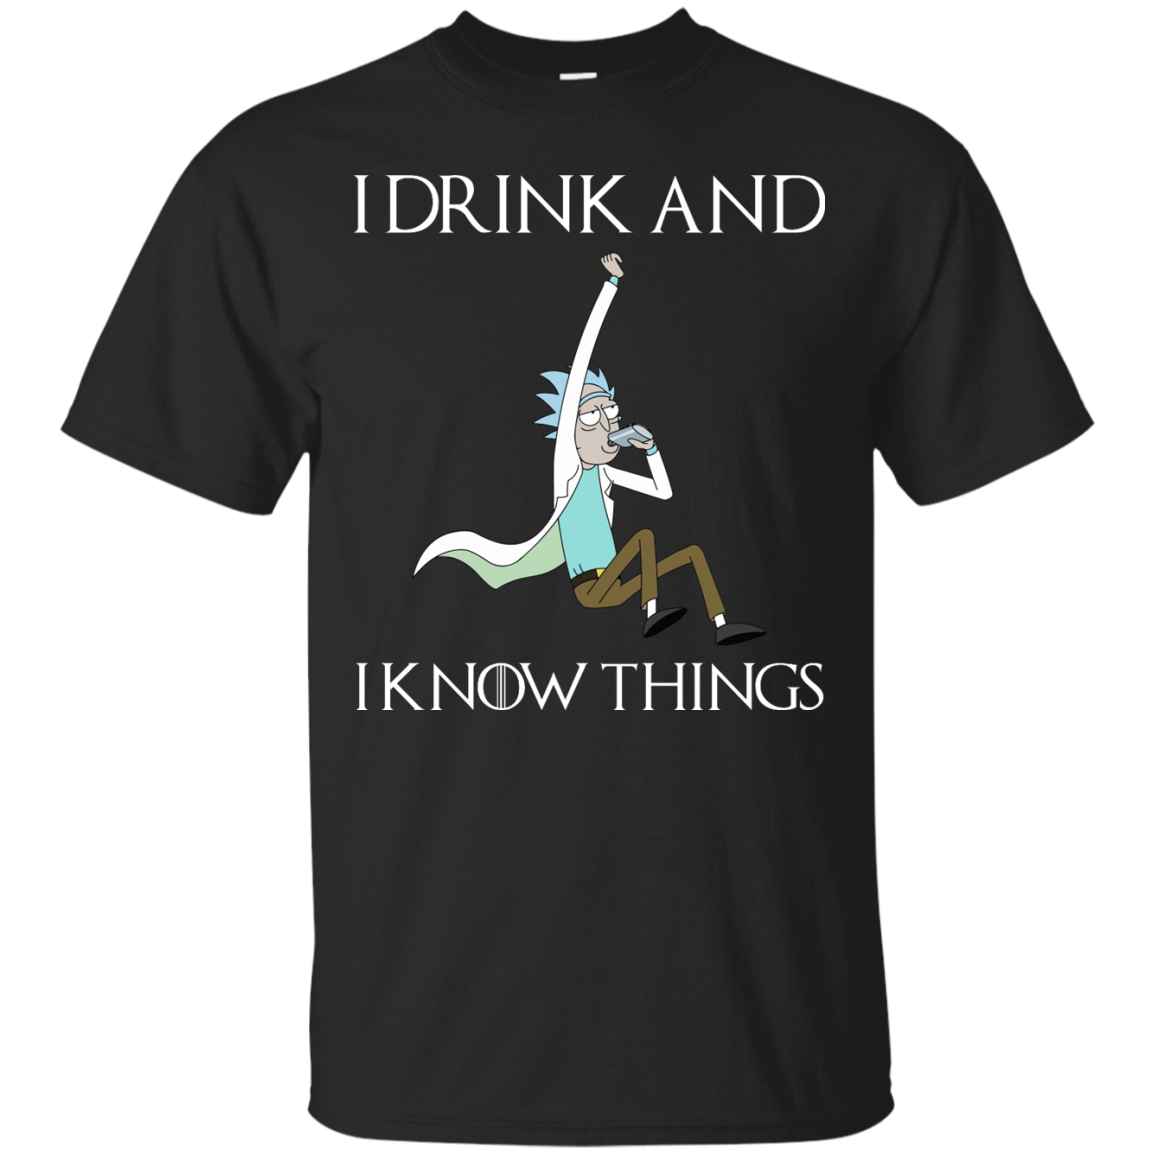 f45c500a5 Game of Thrones X Rick and Morty I Drink and I Know Things T-Shirt ...